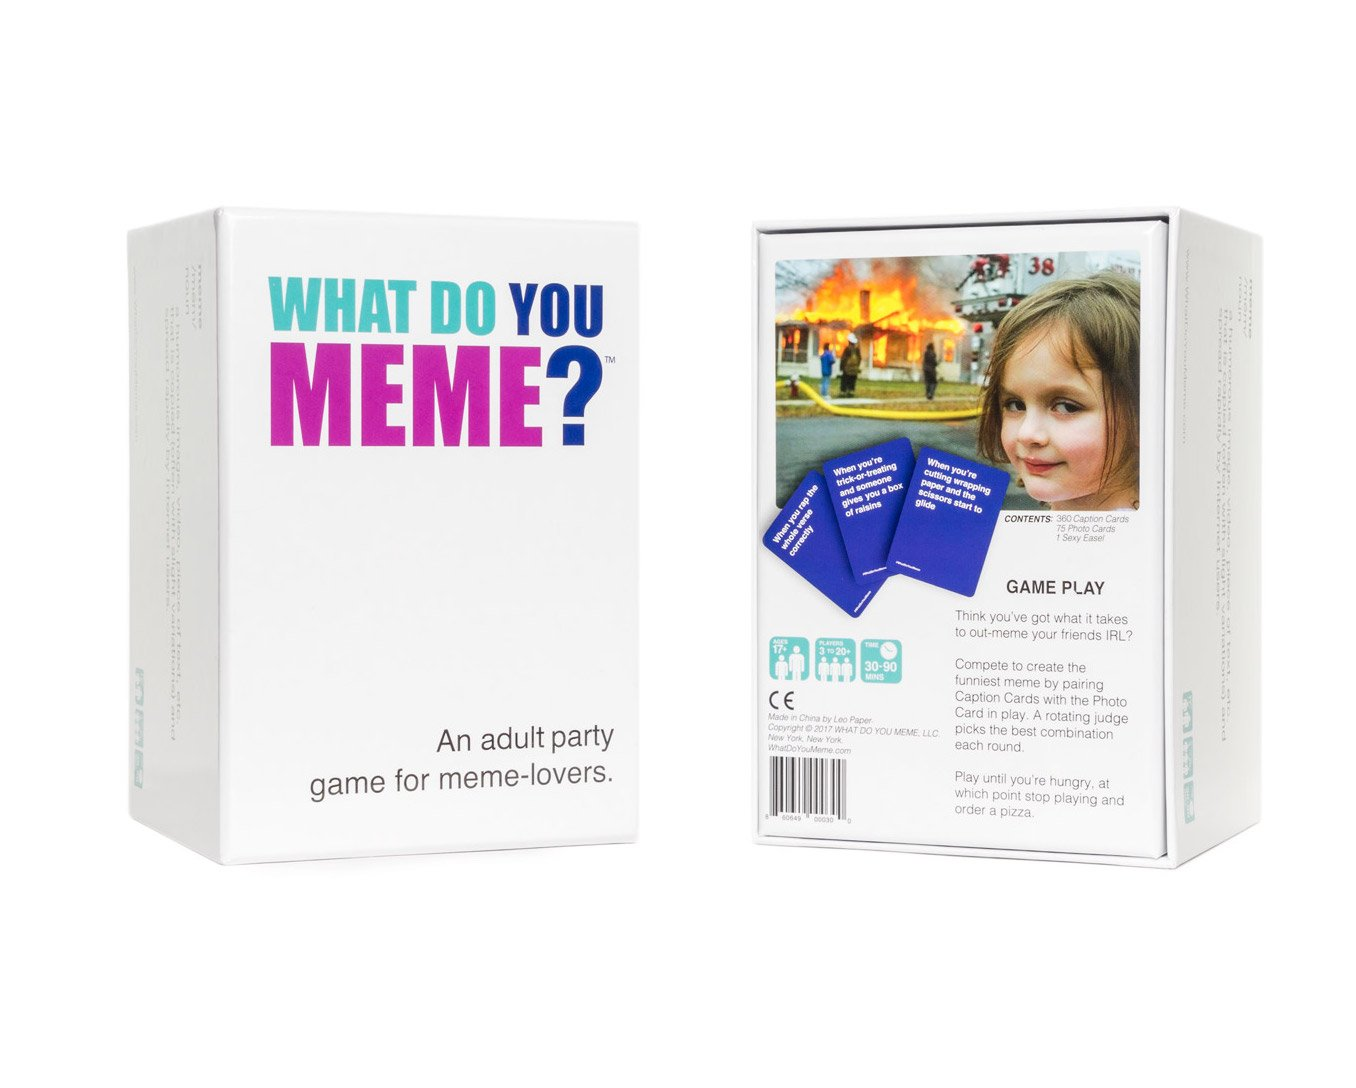 619QJ5ncy3L._SL1356_ amazon com what do you meme adult party game toys & games